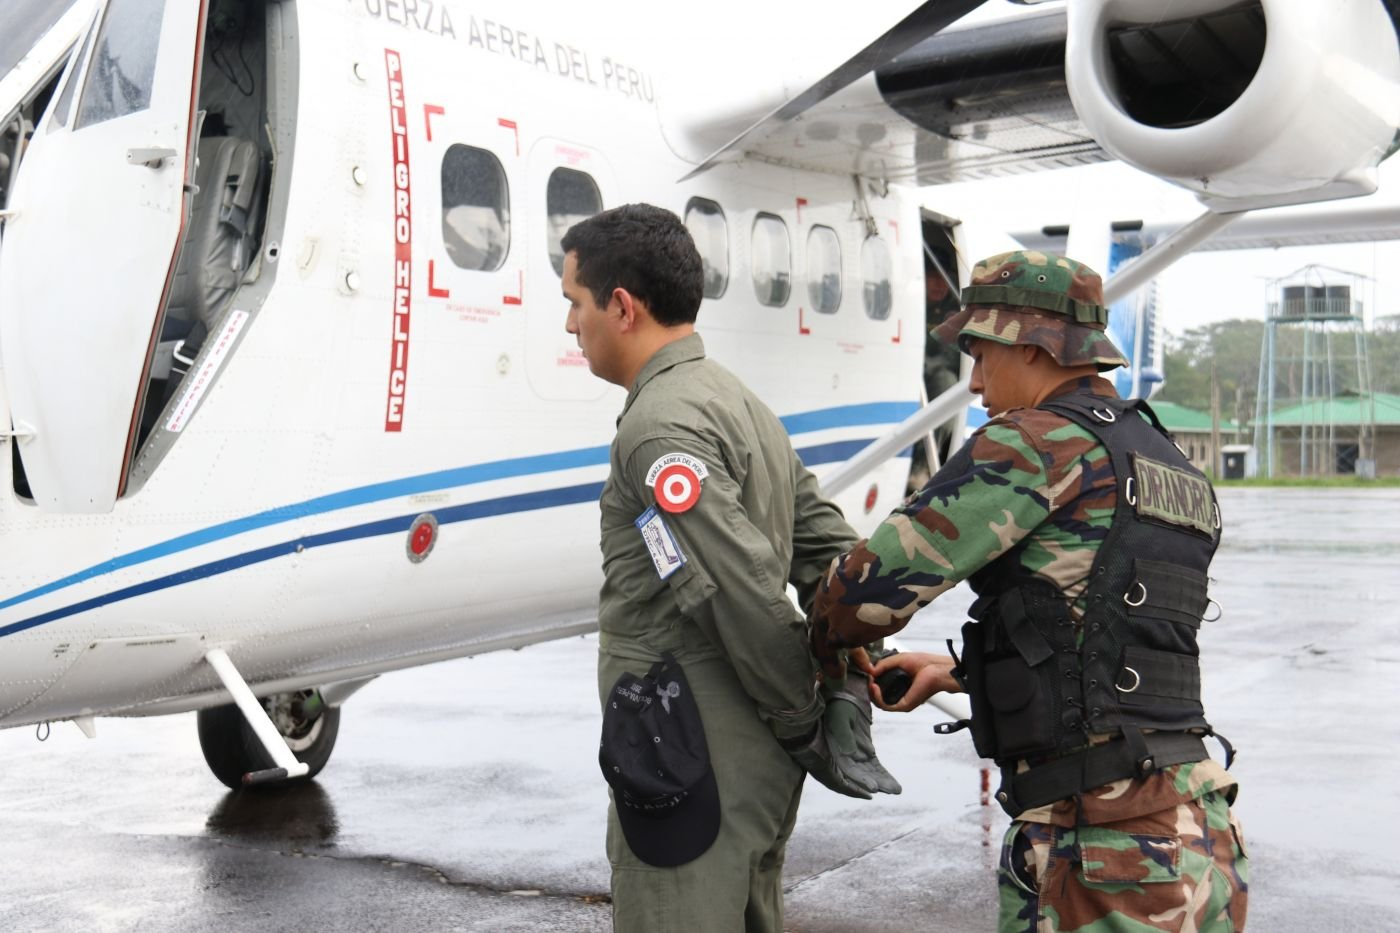 Peru and Bolivia Close Airspace to Narcotrafficking